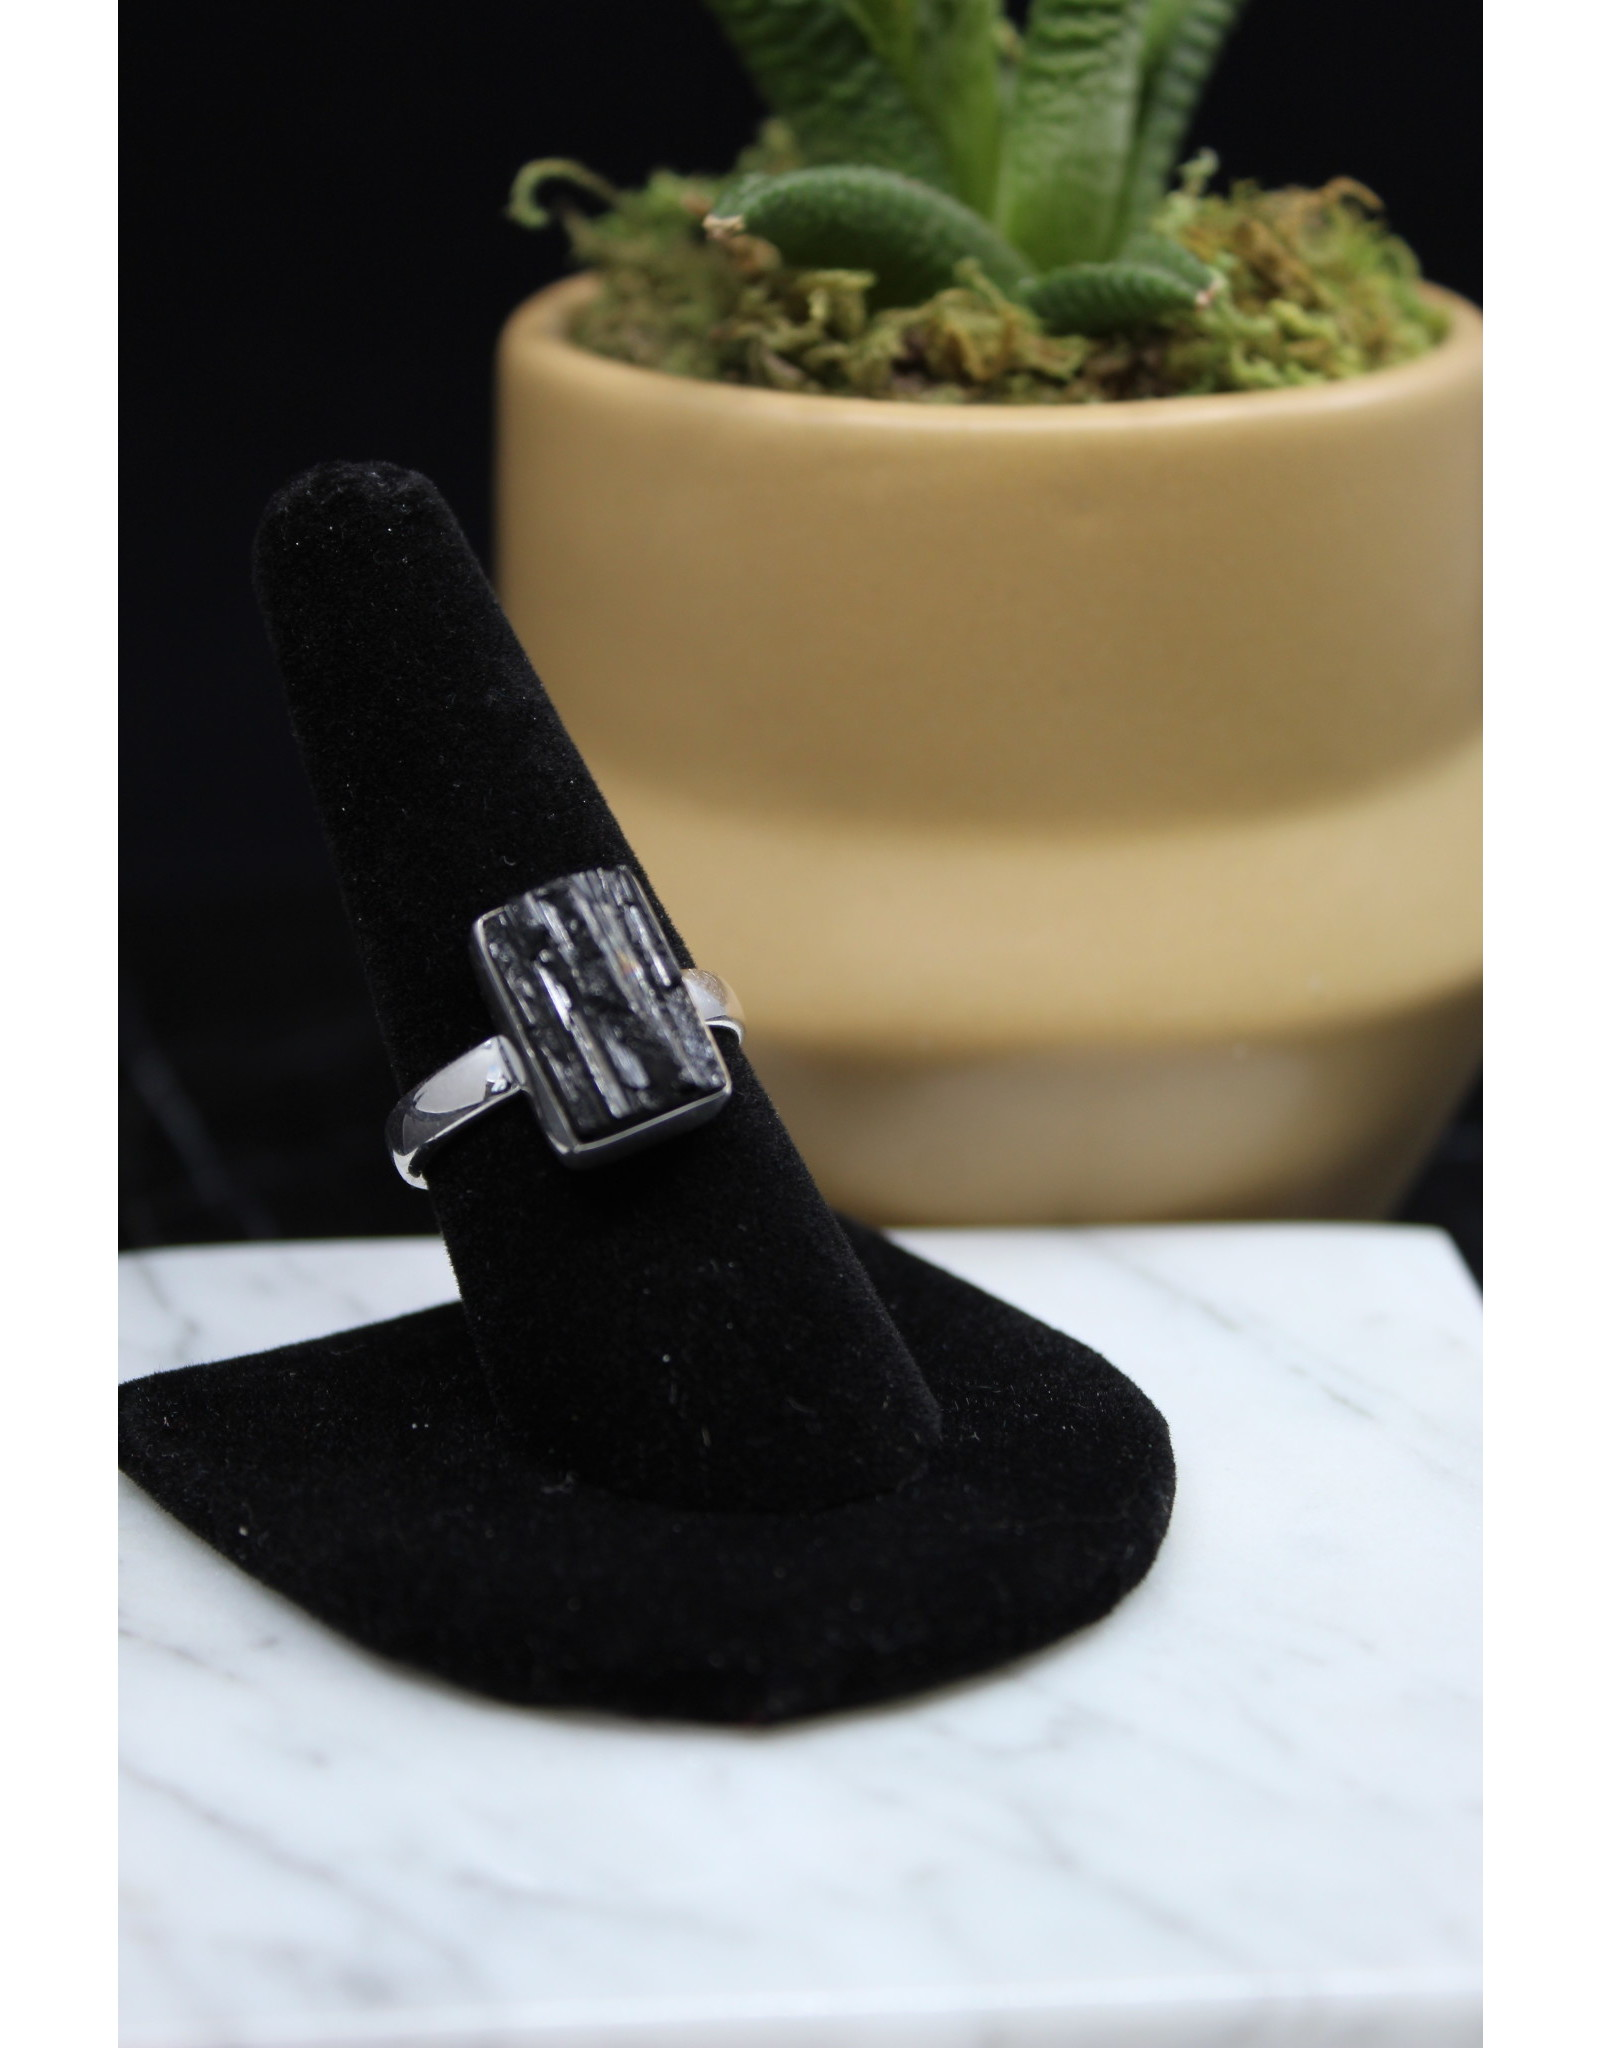 Black Tourmaline Ring - Size 9